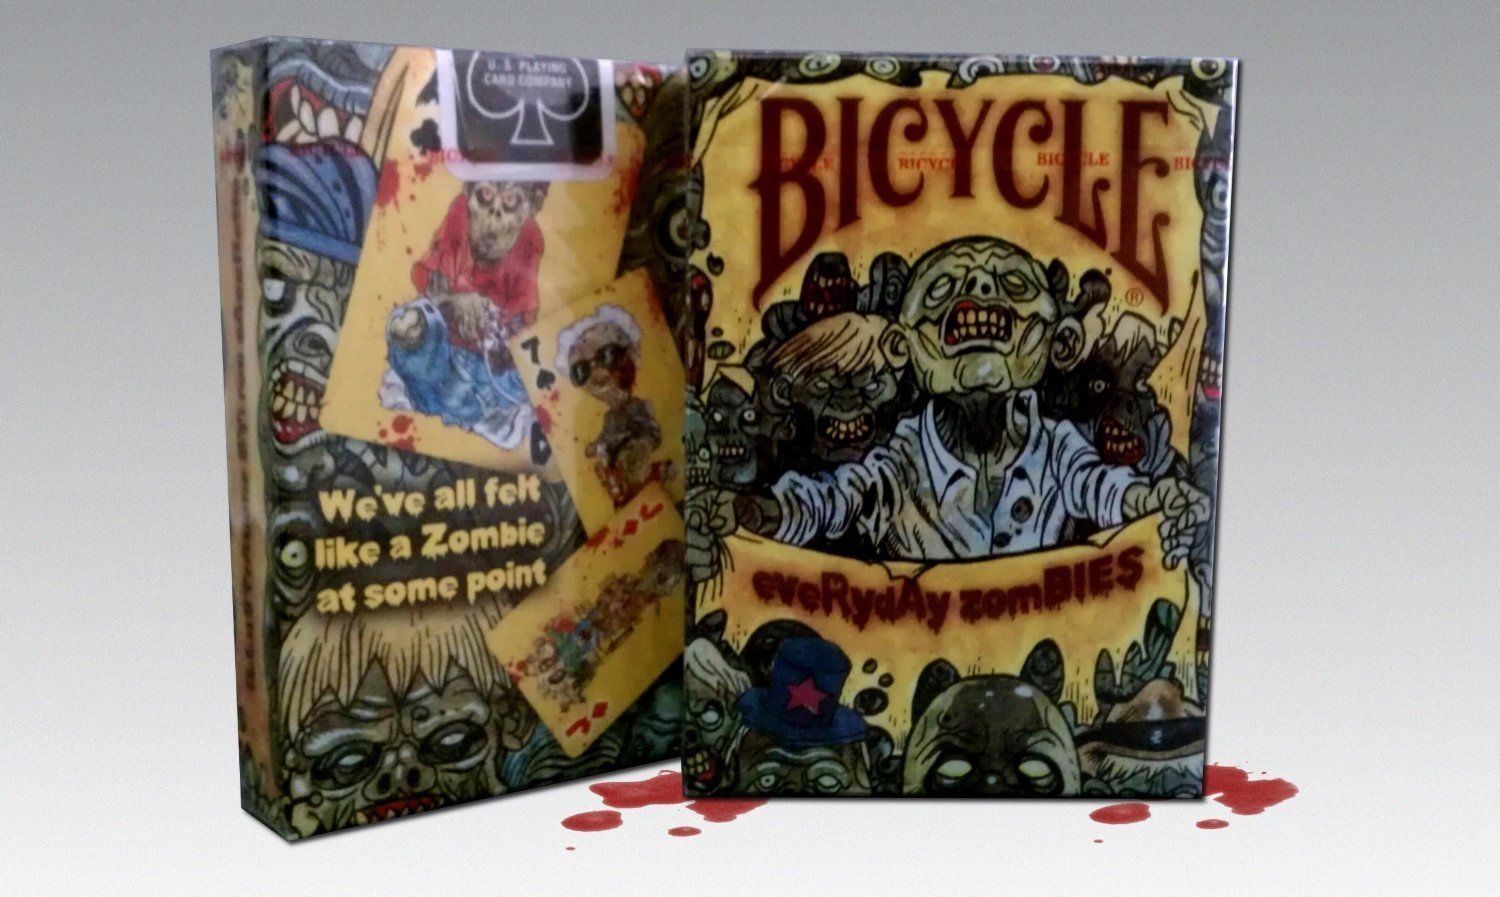 Bicycle Everyday Zombie Playing Cards  New  Free shipping - $7.87